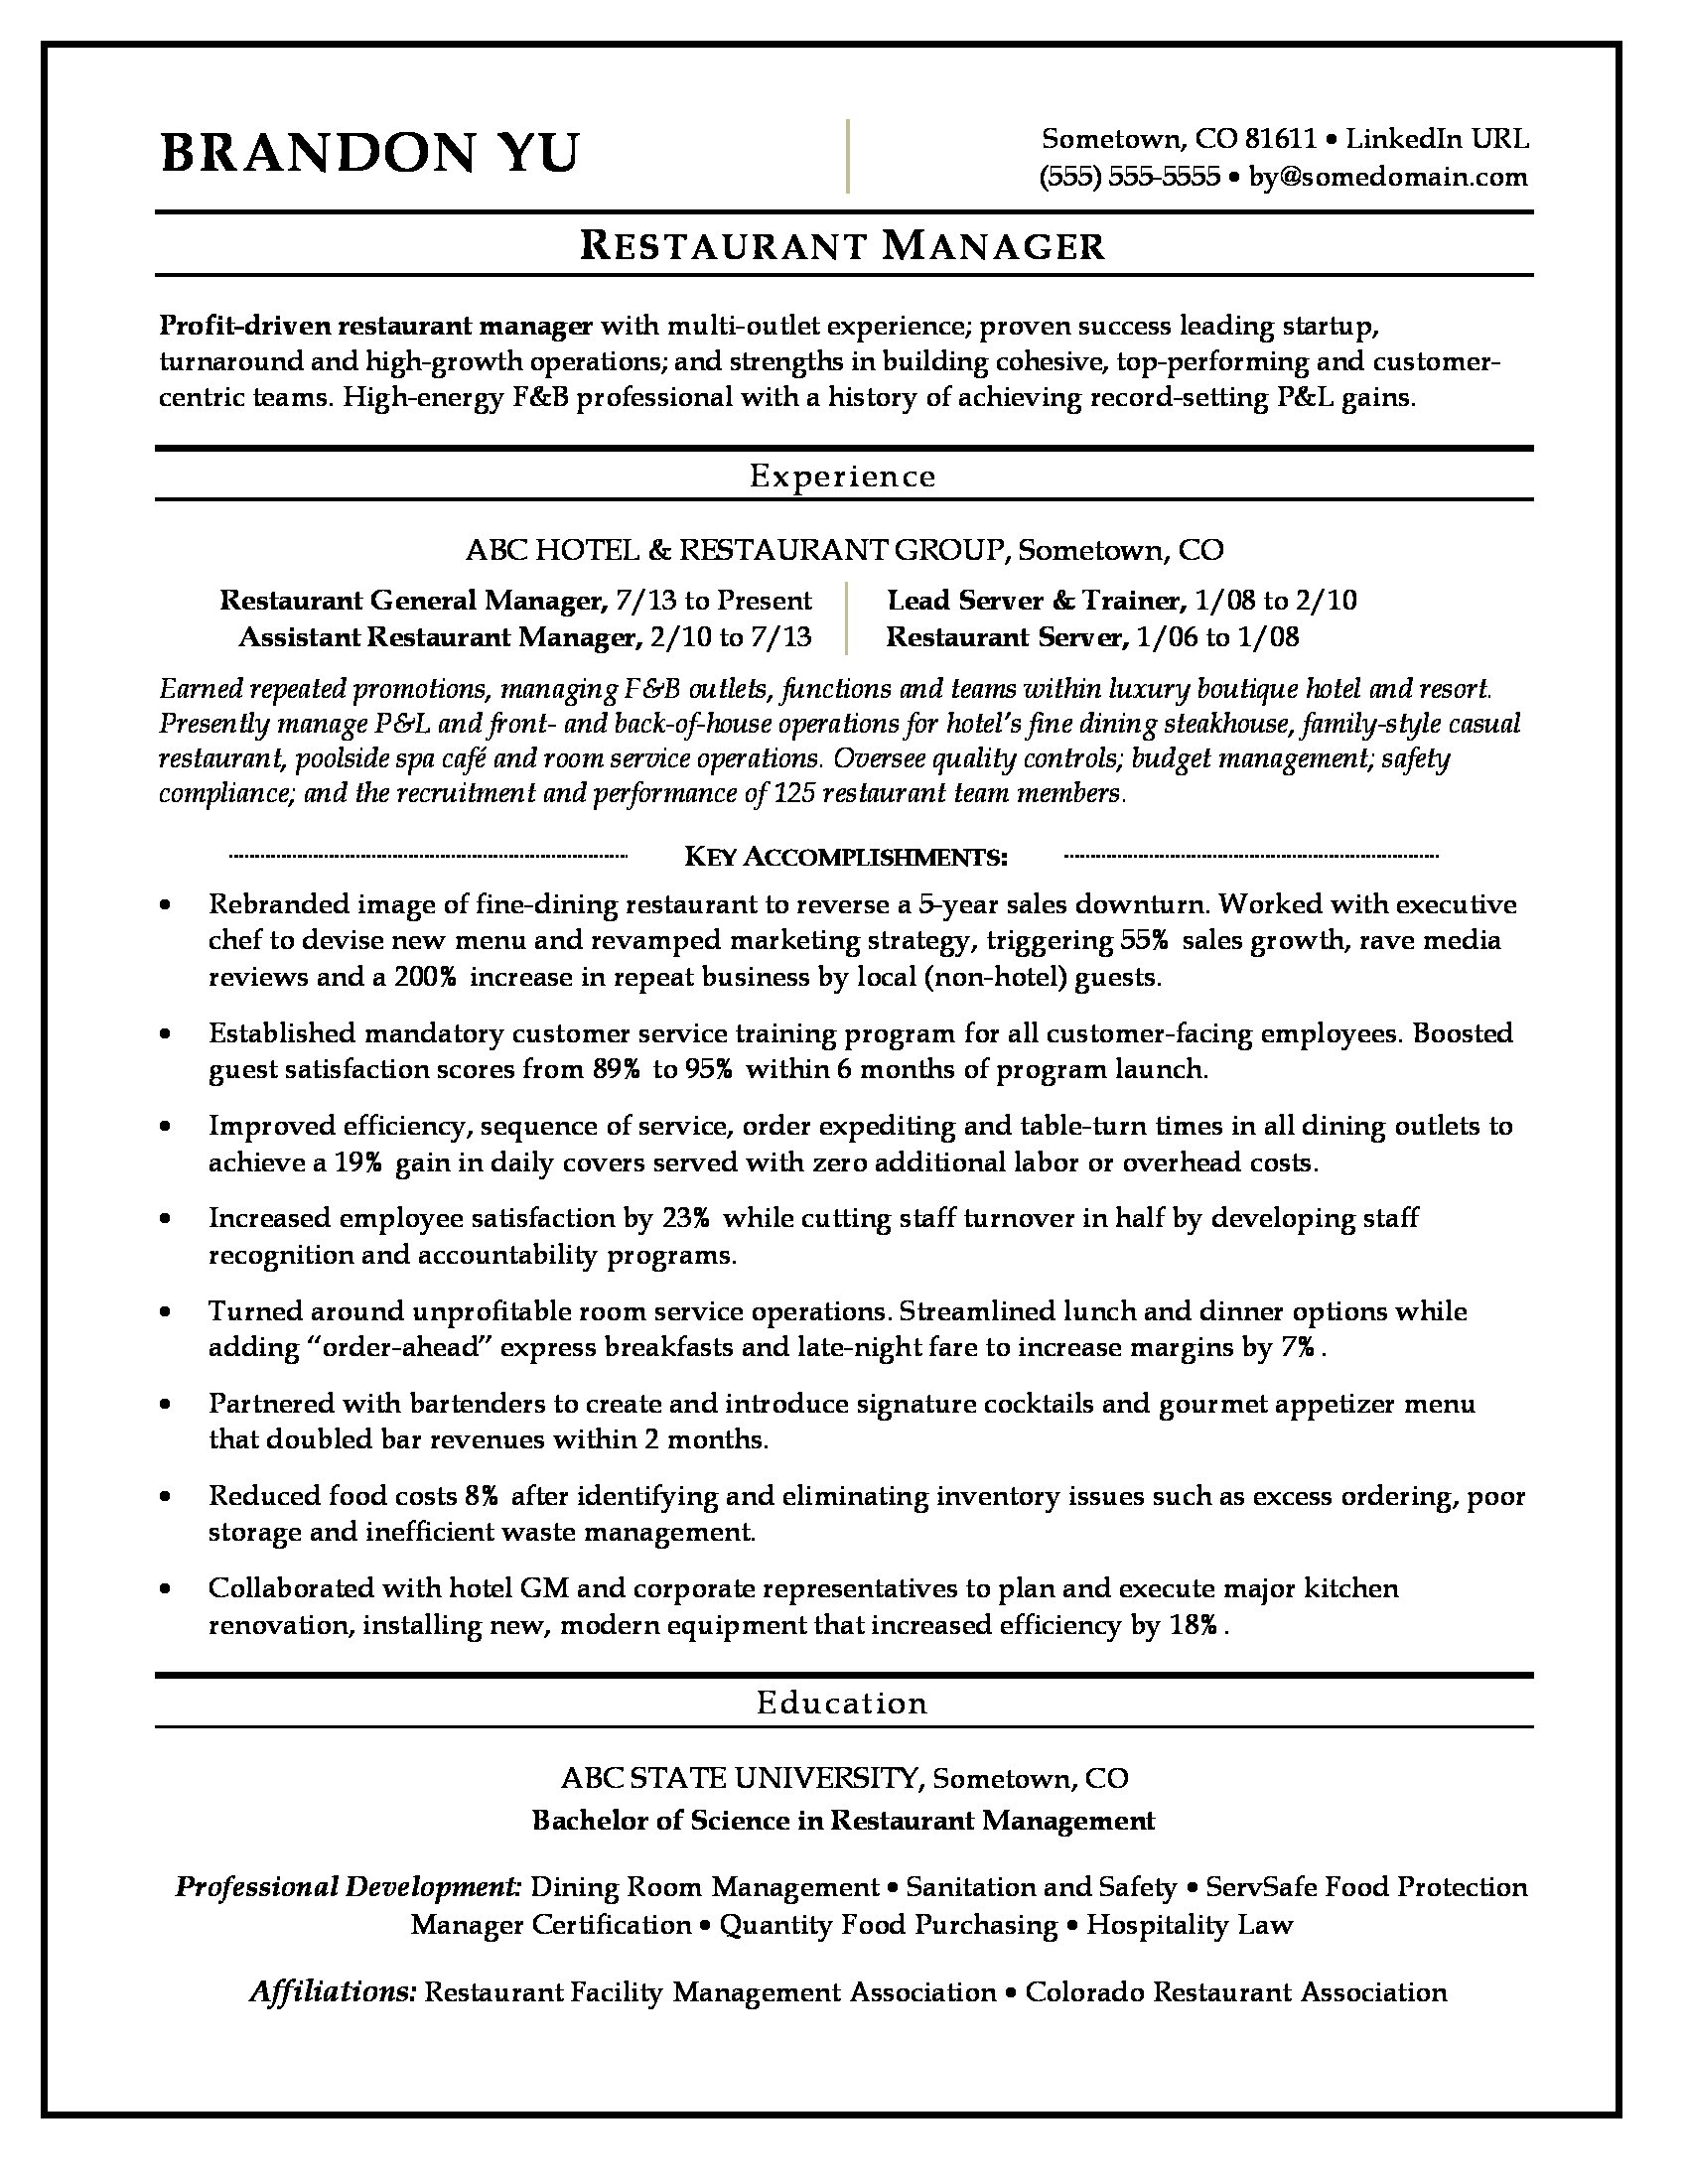 Awesome Sample Resume For A Restaurant Manager